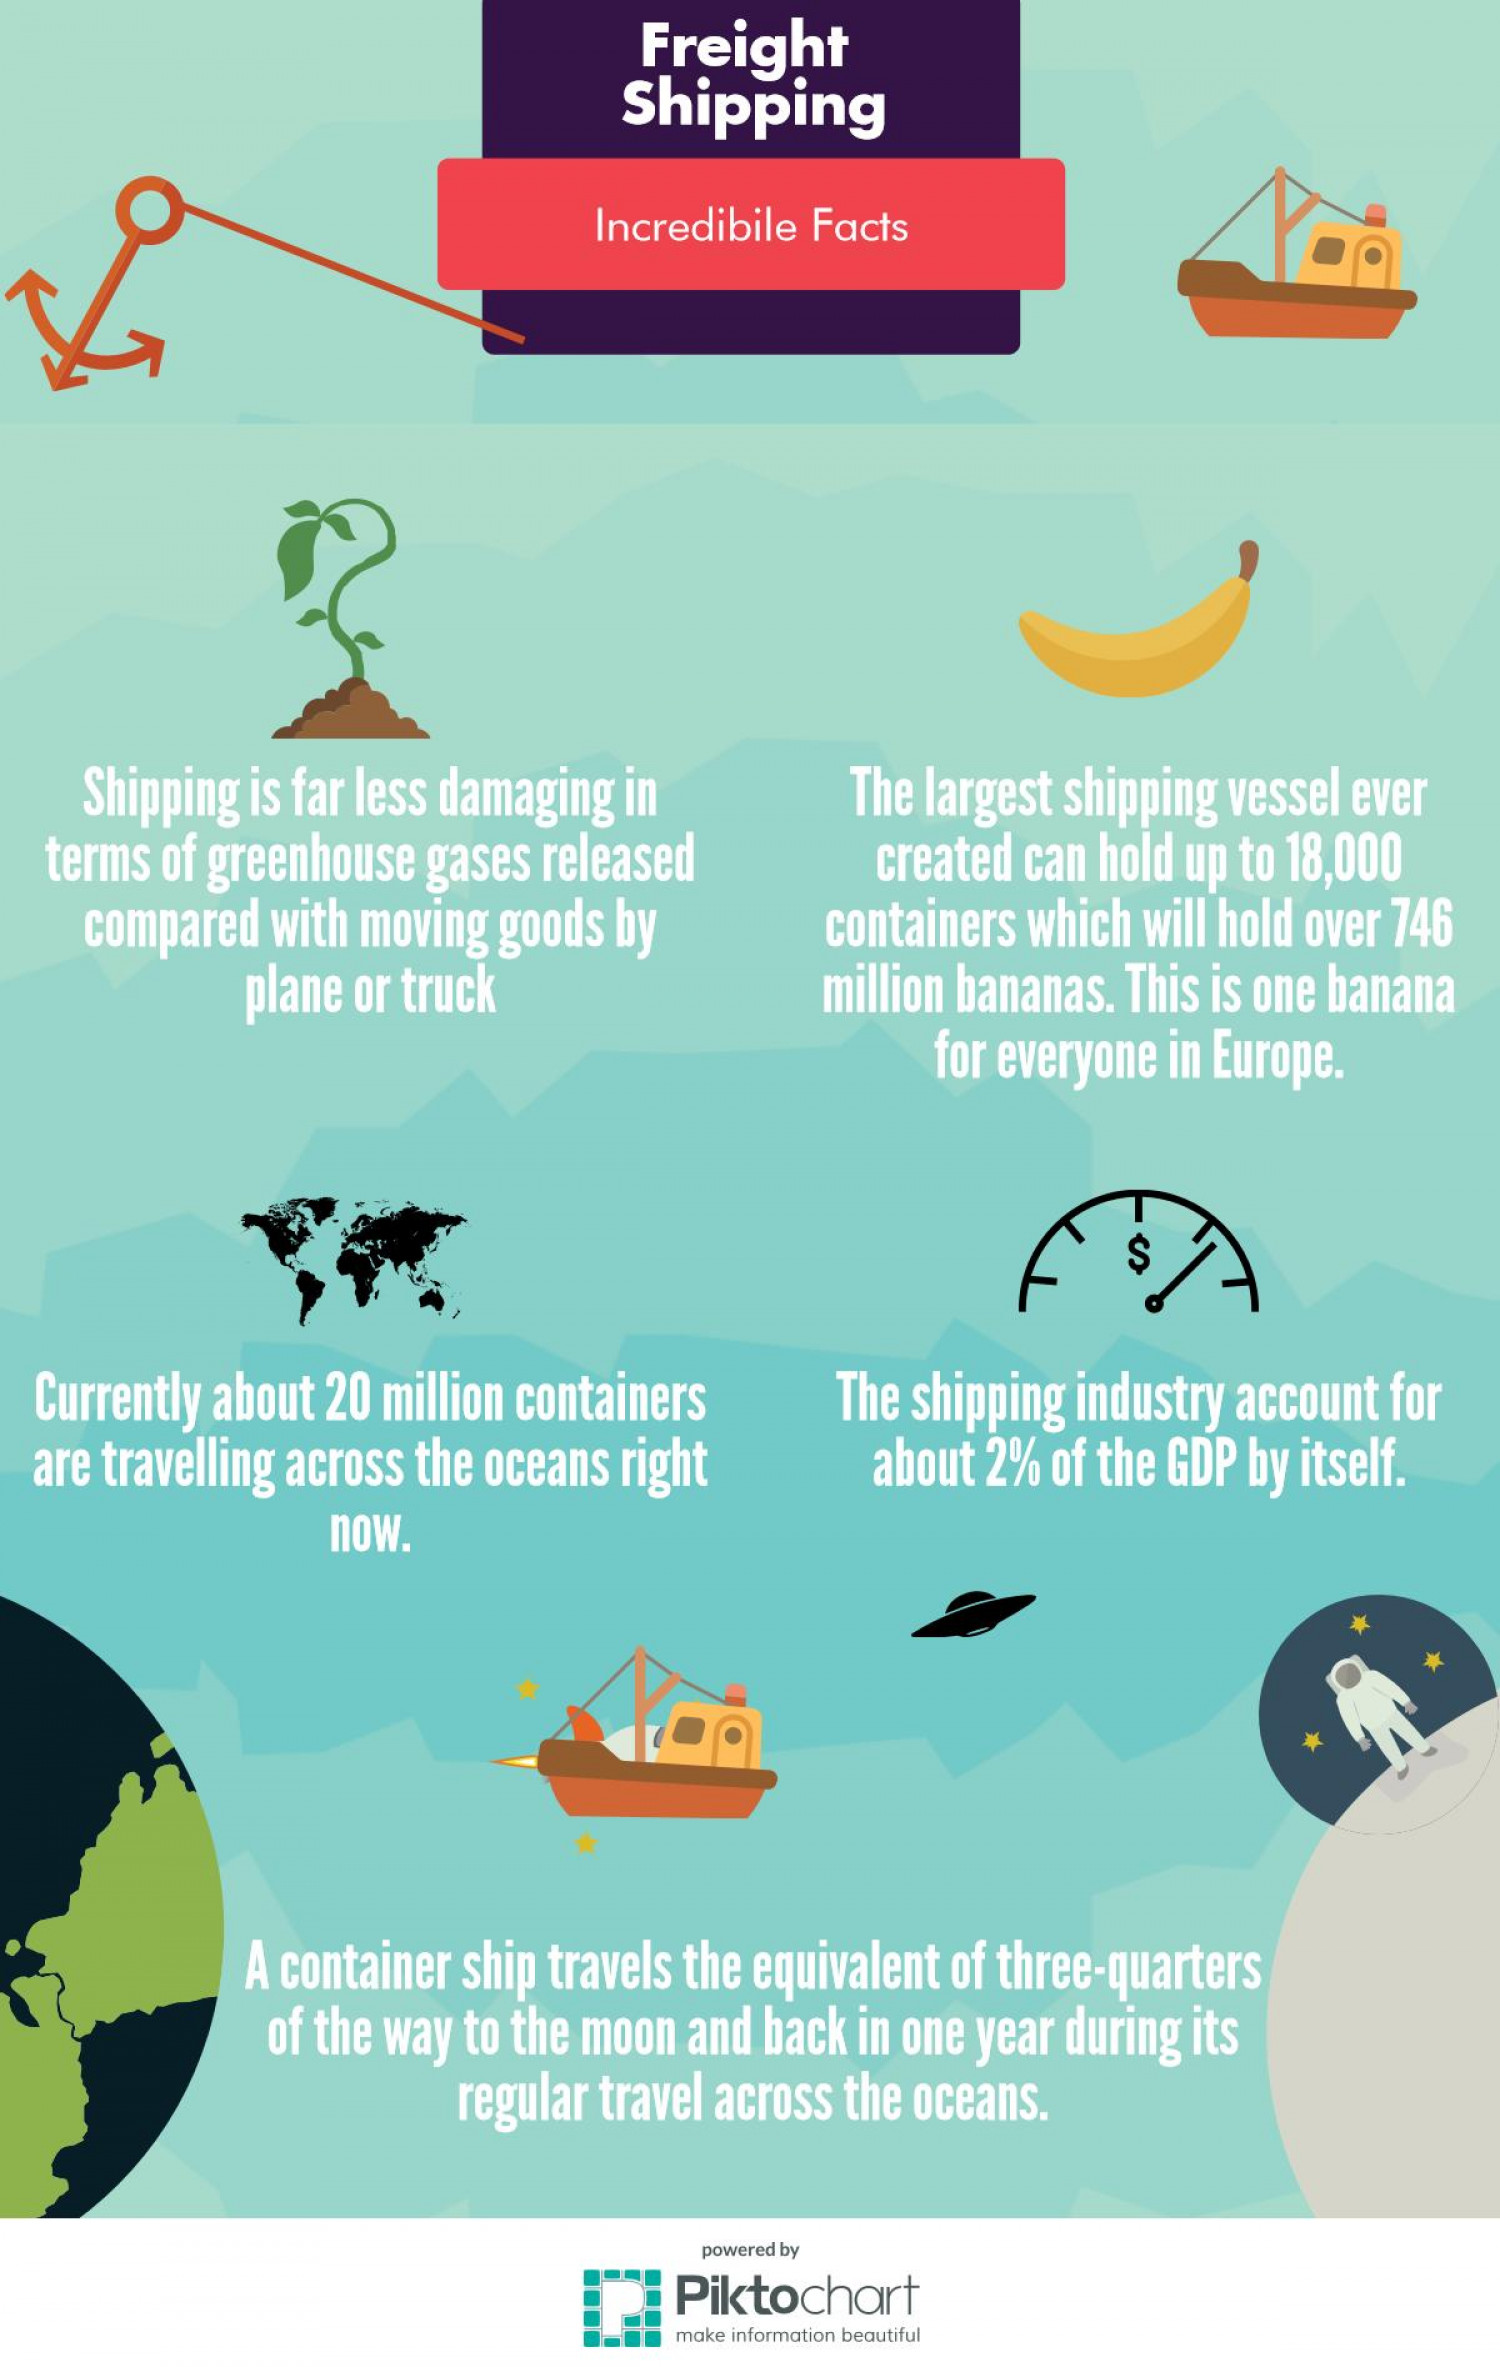 Freight Shipping: Incredible Facts Infographic